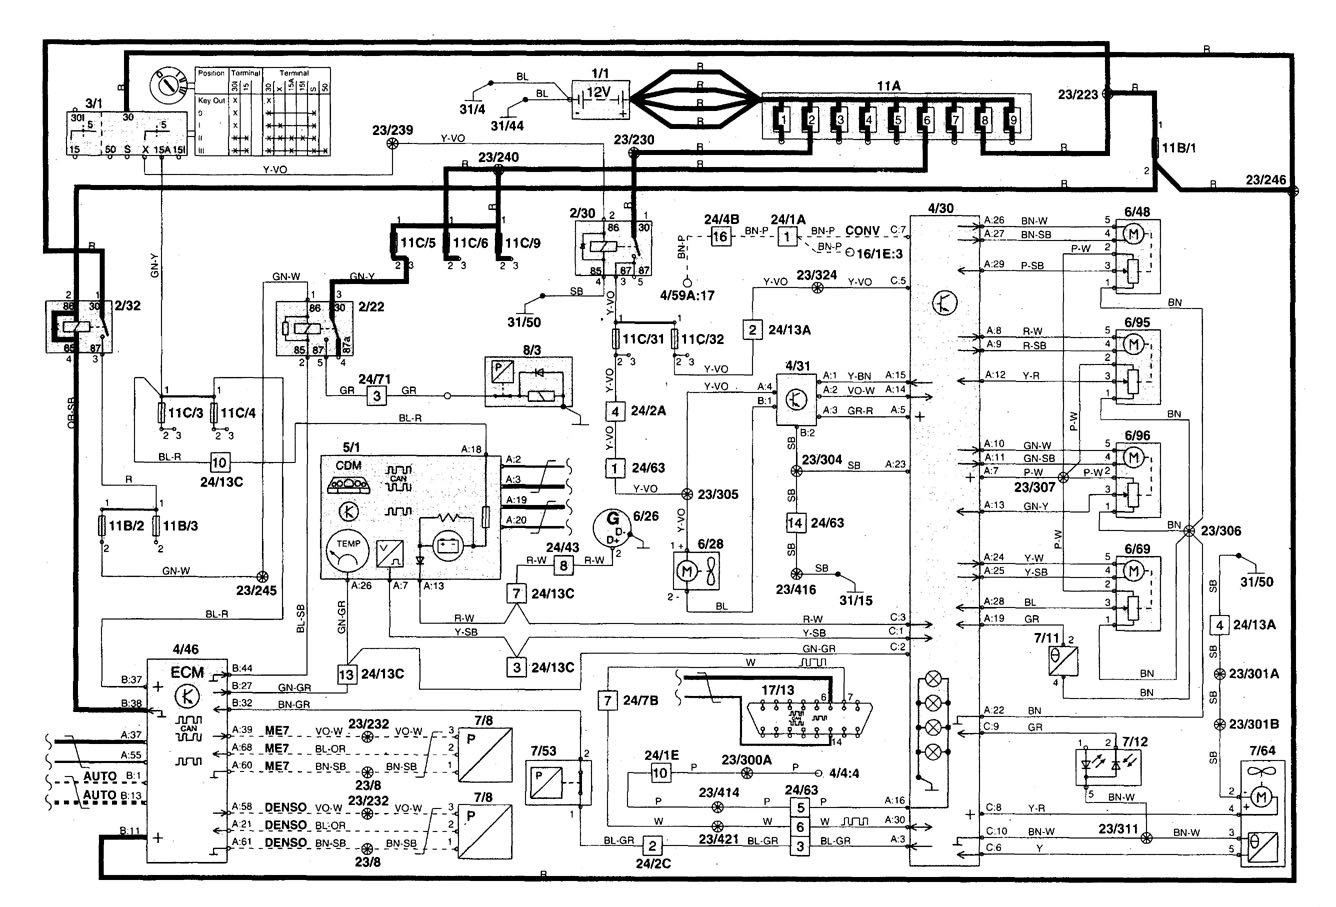 hight resolution of volvo v70 electrical diagram complete wiring diagrams u2022 rh mercise co volvo v70 wiring diagram 2004 volvo v70 electrical wiring diagram